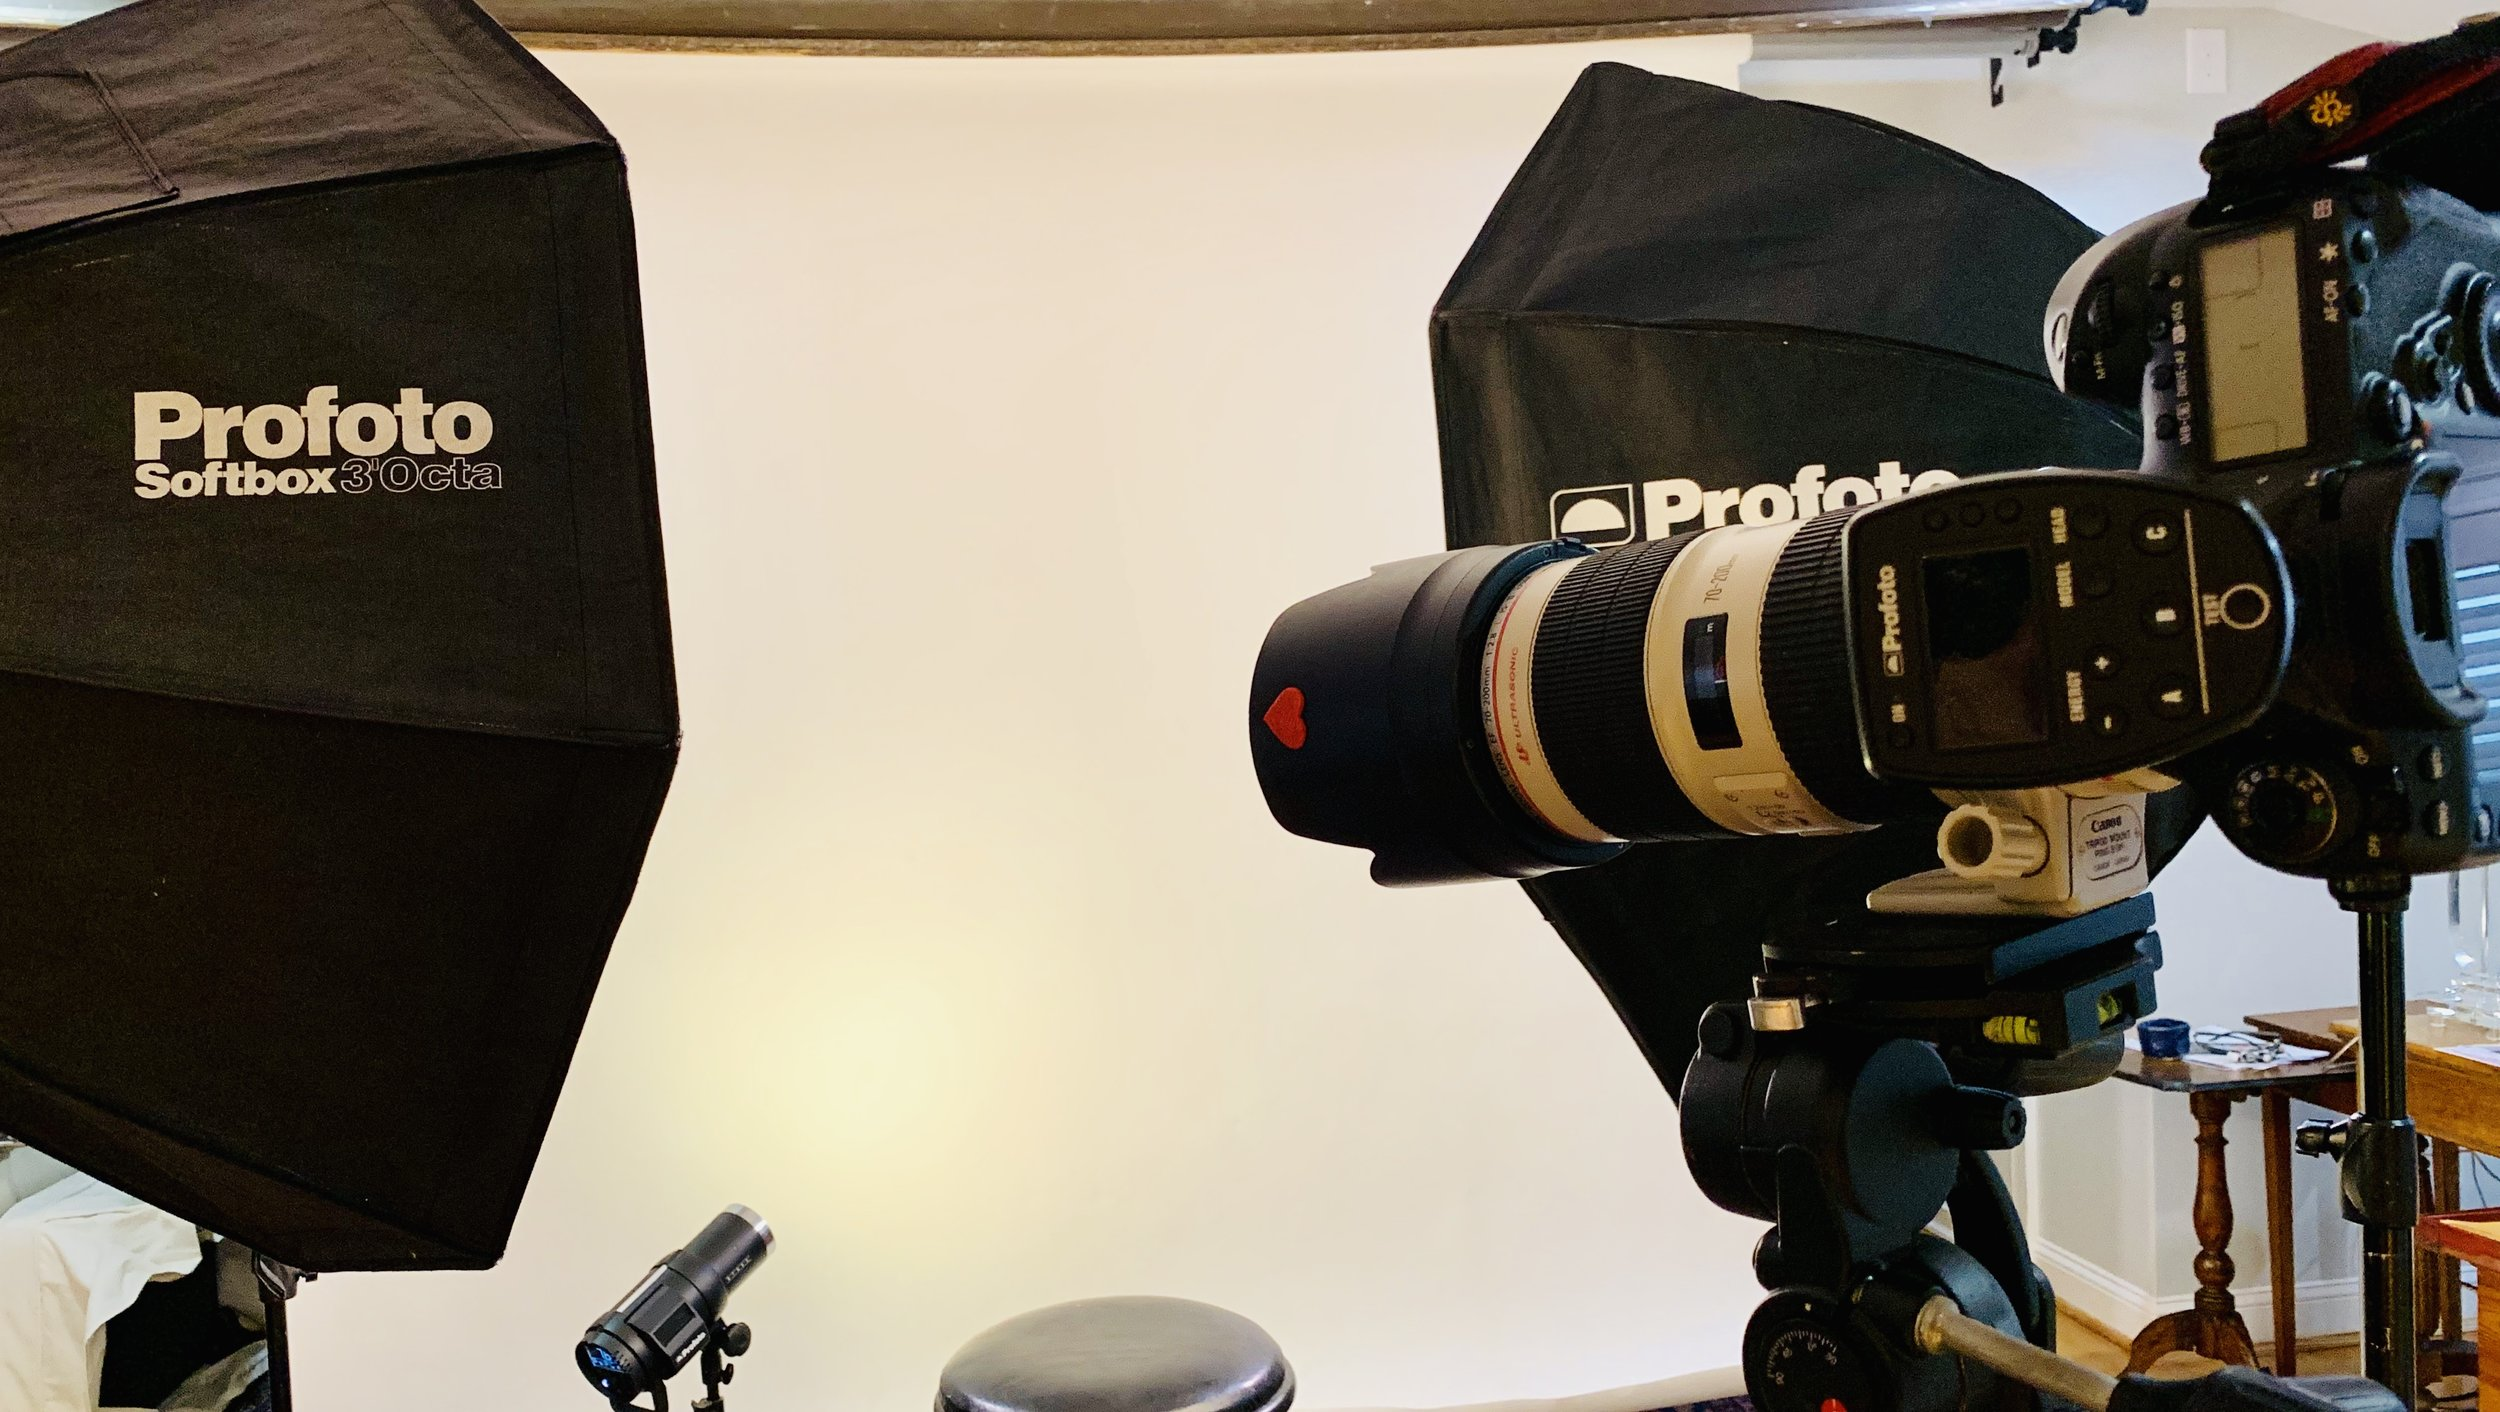 This is the equipment I use to produce professional Canadian passport photos.